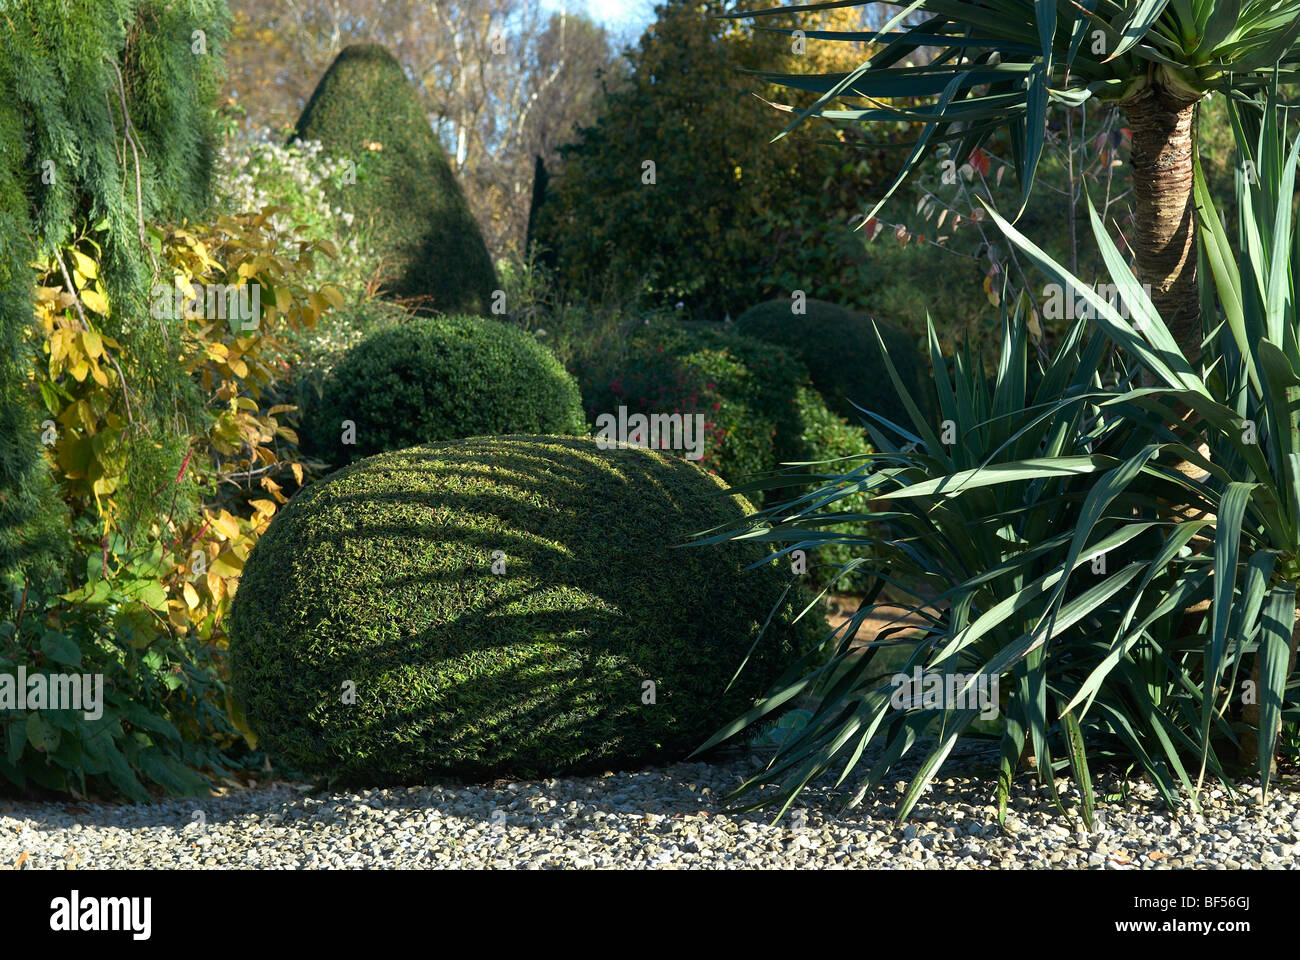 Clipped Yew hedge forming part of a topiary garden at Adel near Leeds UK England - Stock Image